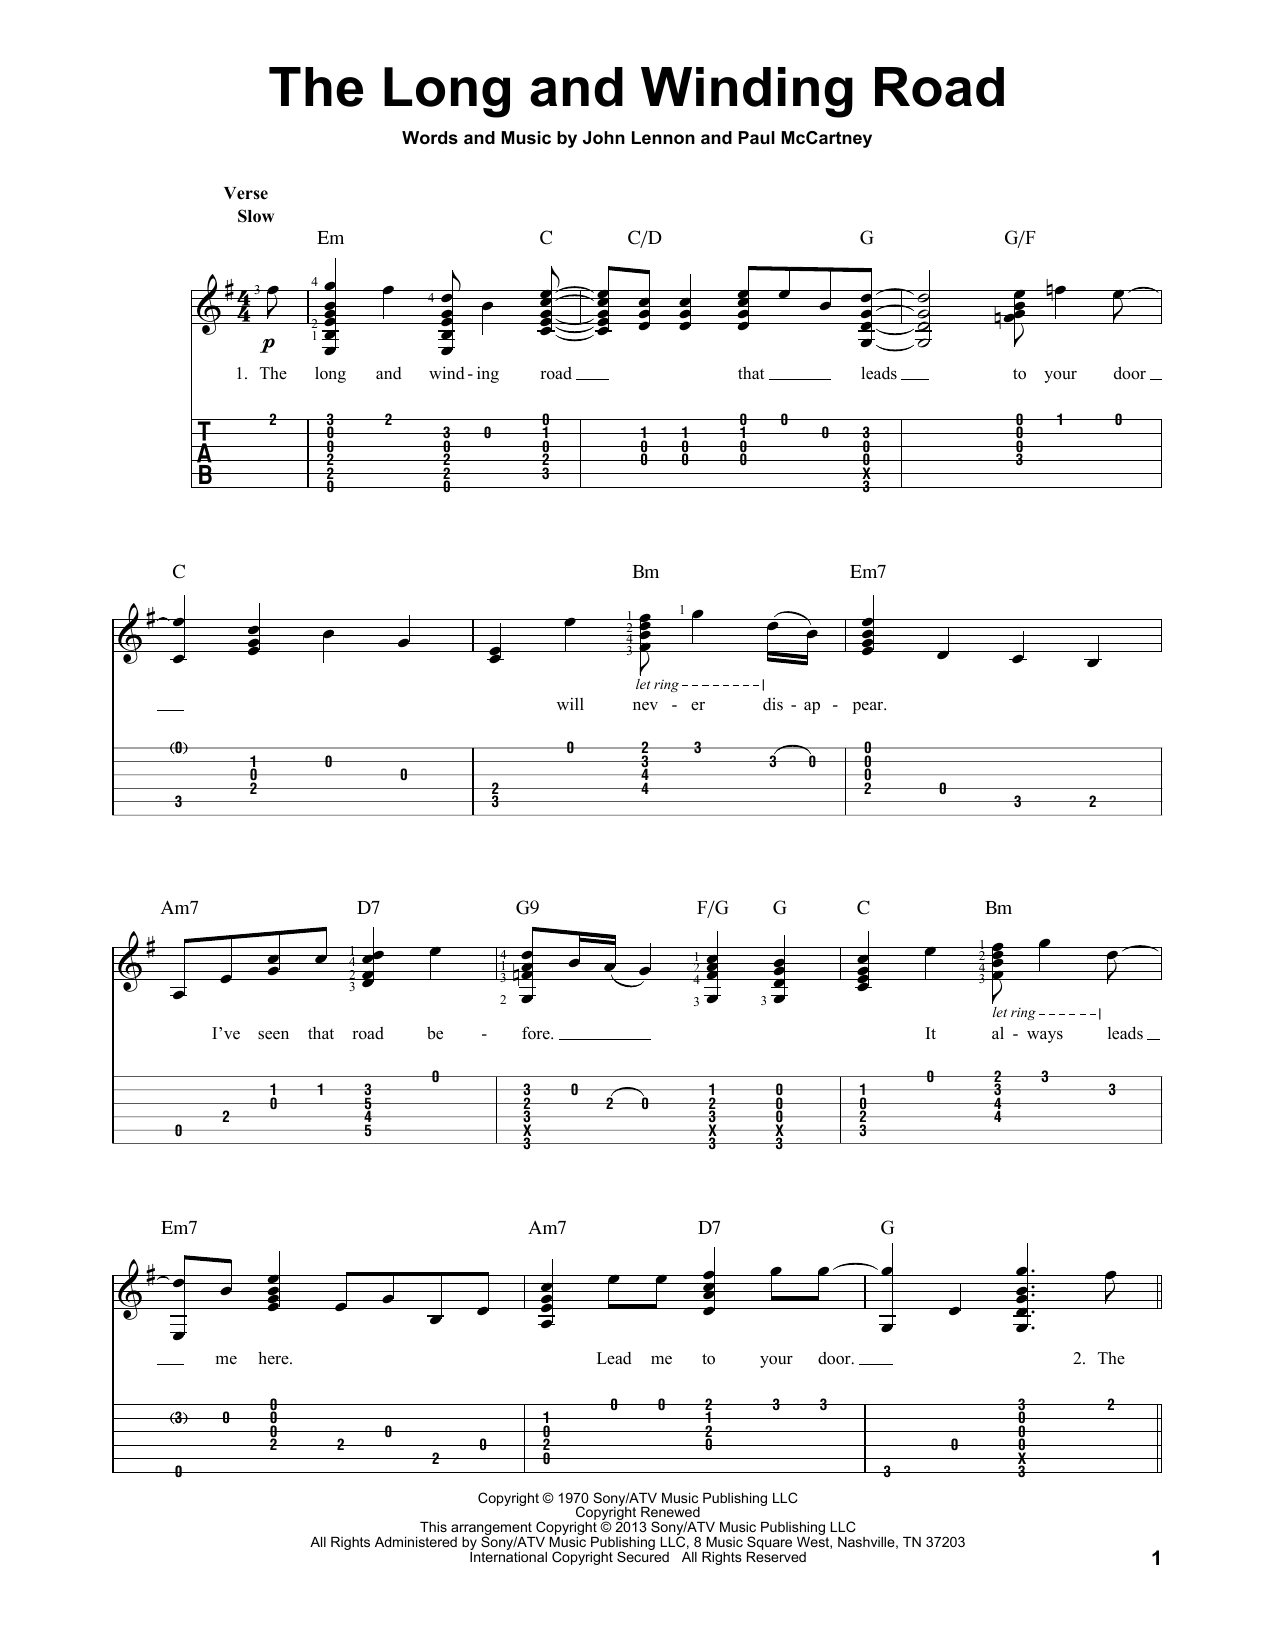 The Long And Winding Road sheet music for guitar solo by The Beatles